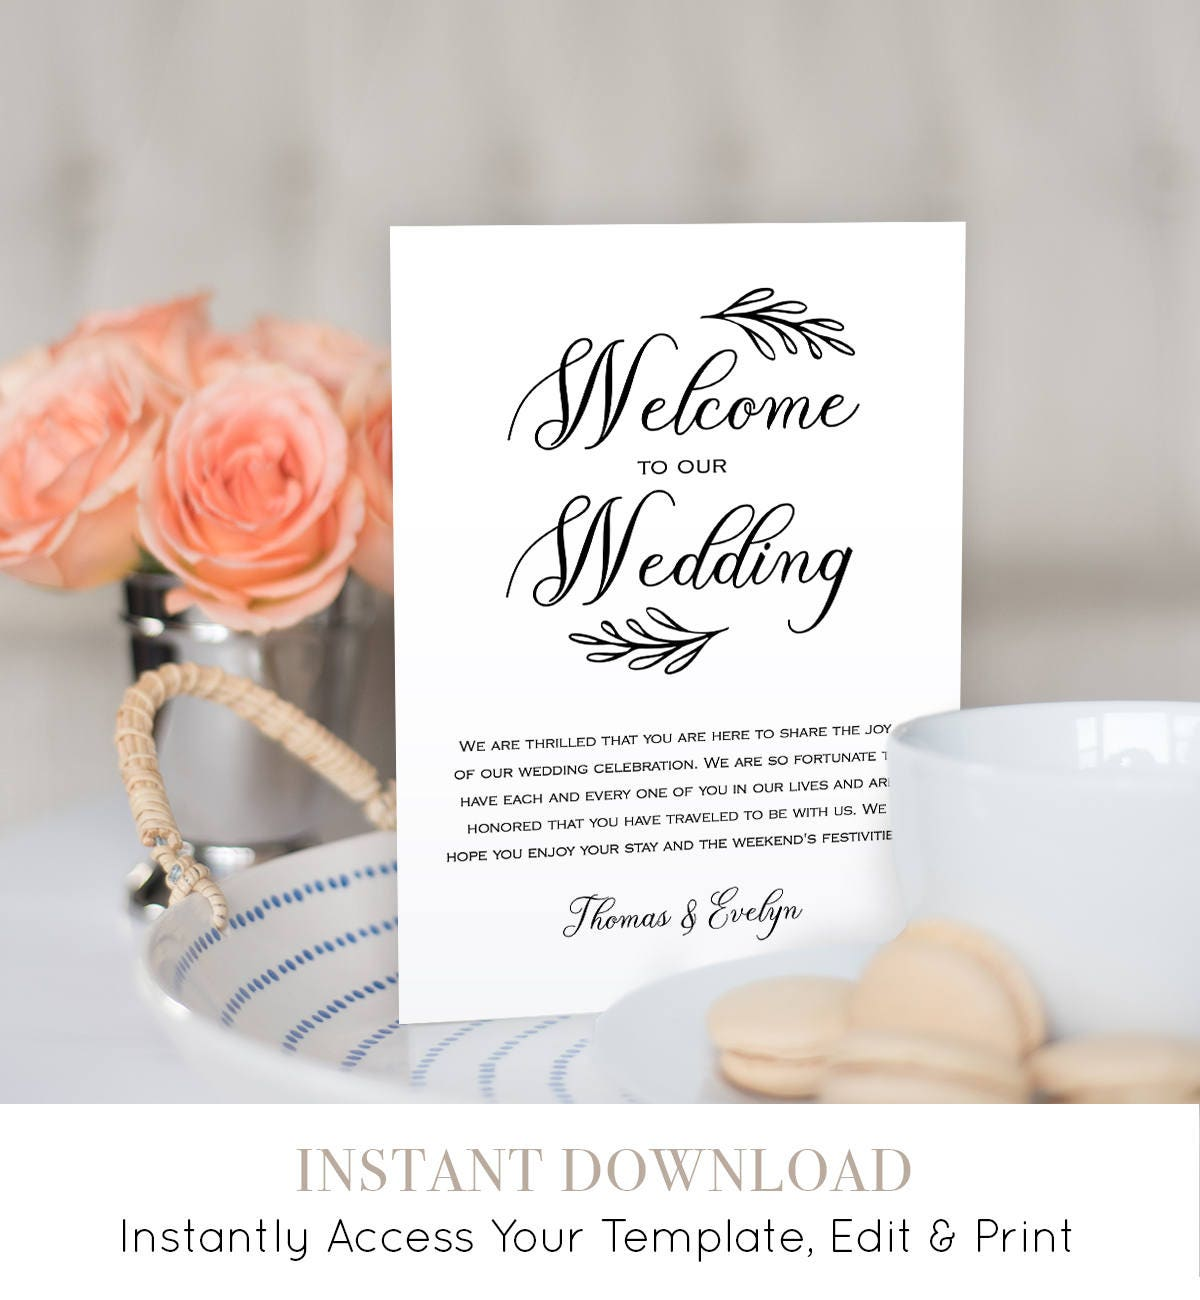 Wedding itinerary agenda welcome bag template printable welcome wedding itinerary agenda welcome bag template printable welcome letter instant download editable template digital file 027 106wb junglespirit Images